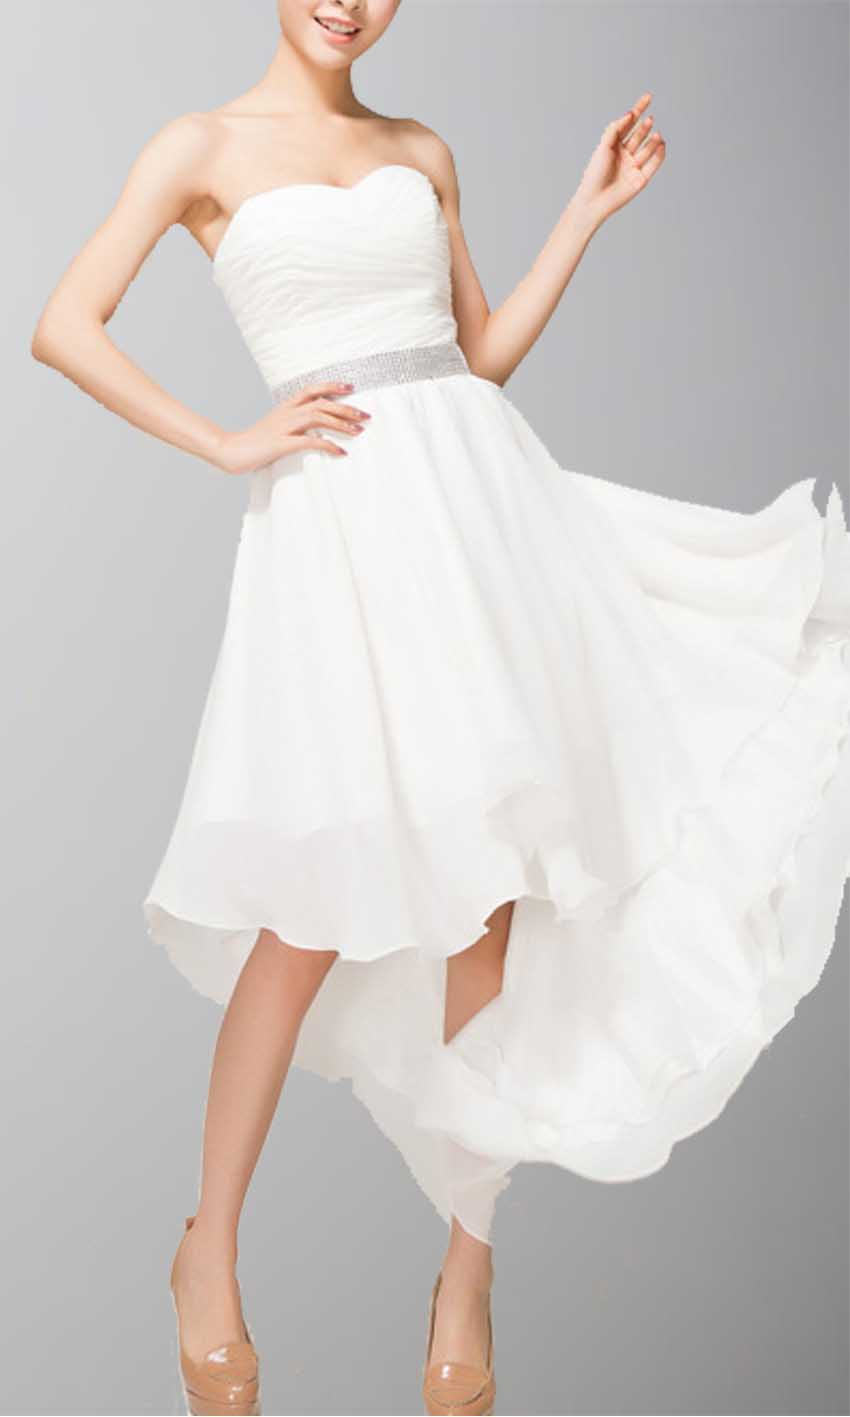 White Strapless Sweetheart Beaded High Low Homecoming KSP101 [KSP101] - £93.00 : Cheap Prom Dresses Uk, Bridesmaid Dresses, 2014 Prom & Evening Dresses, Look for cheap elegant prom dresses 2014, cocktail gowns, or dresses for special occasions? kissprom.co.uk offers various bridesmaid dresses, evening dress, free shipping to UK etc.